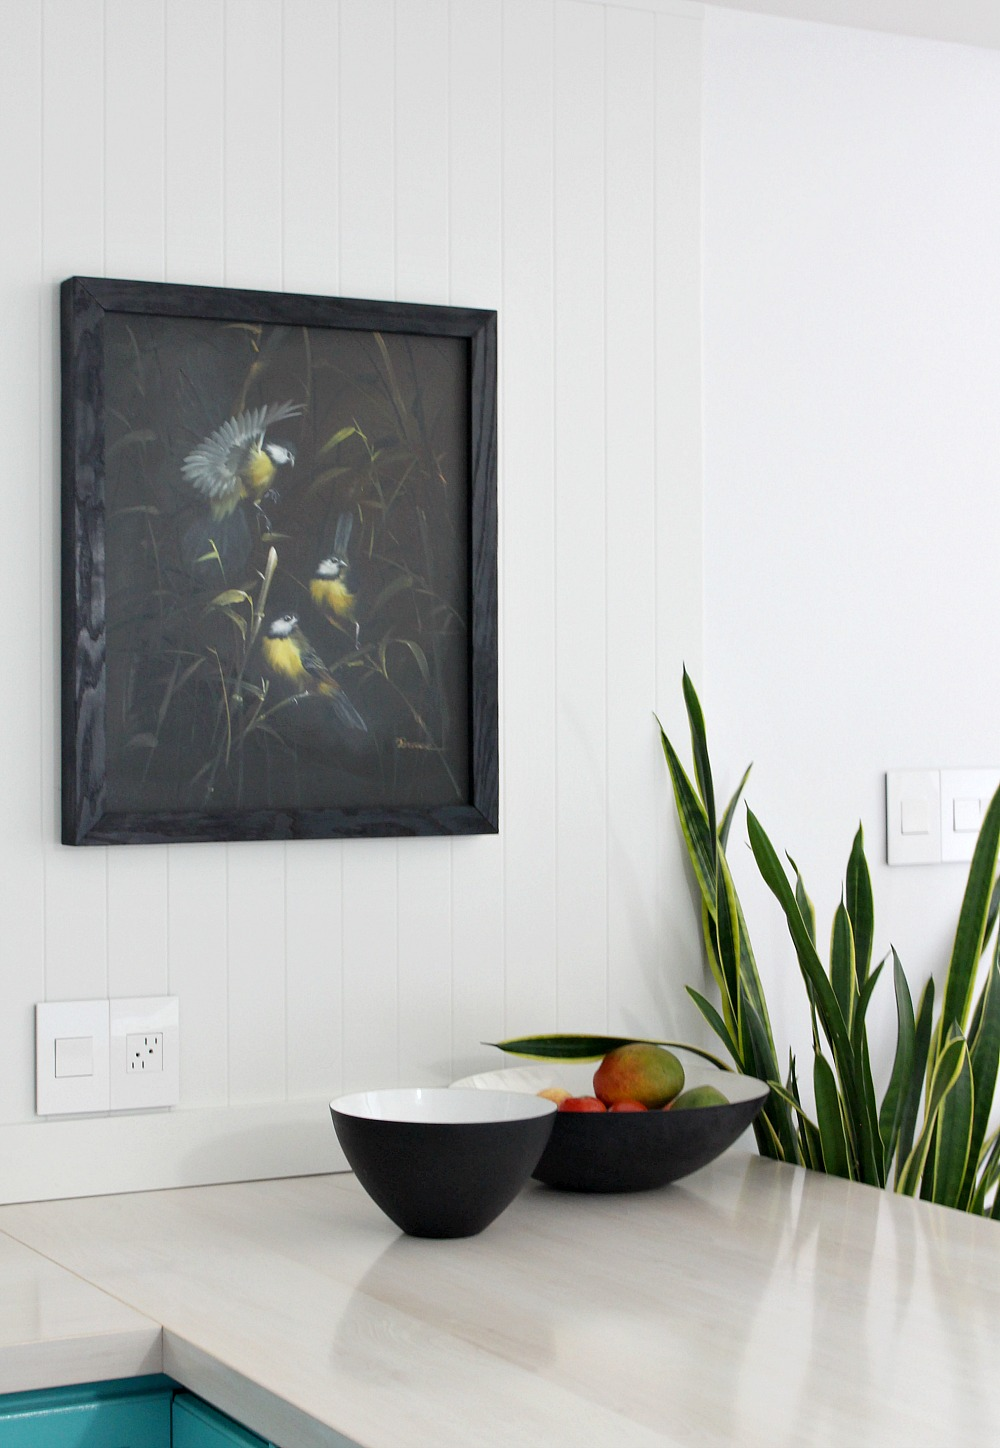 How to Build a New Frame for Art